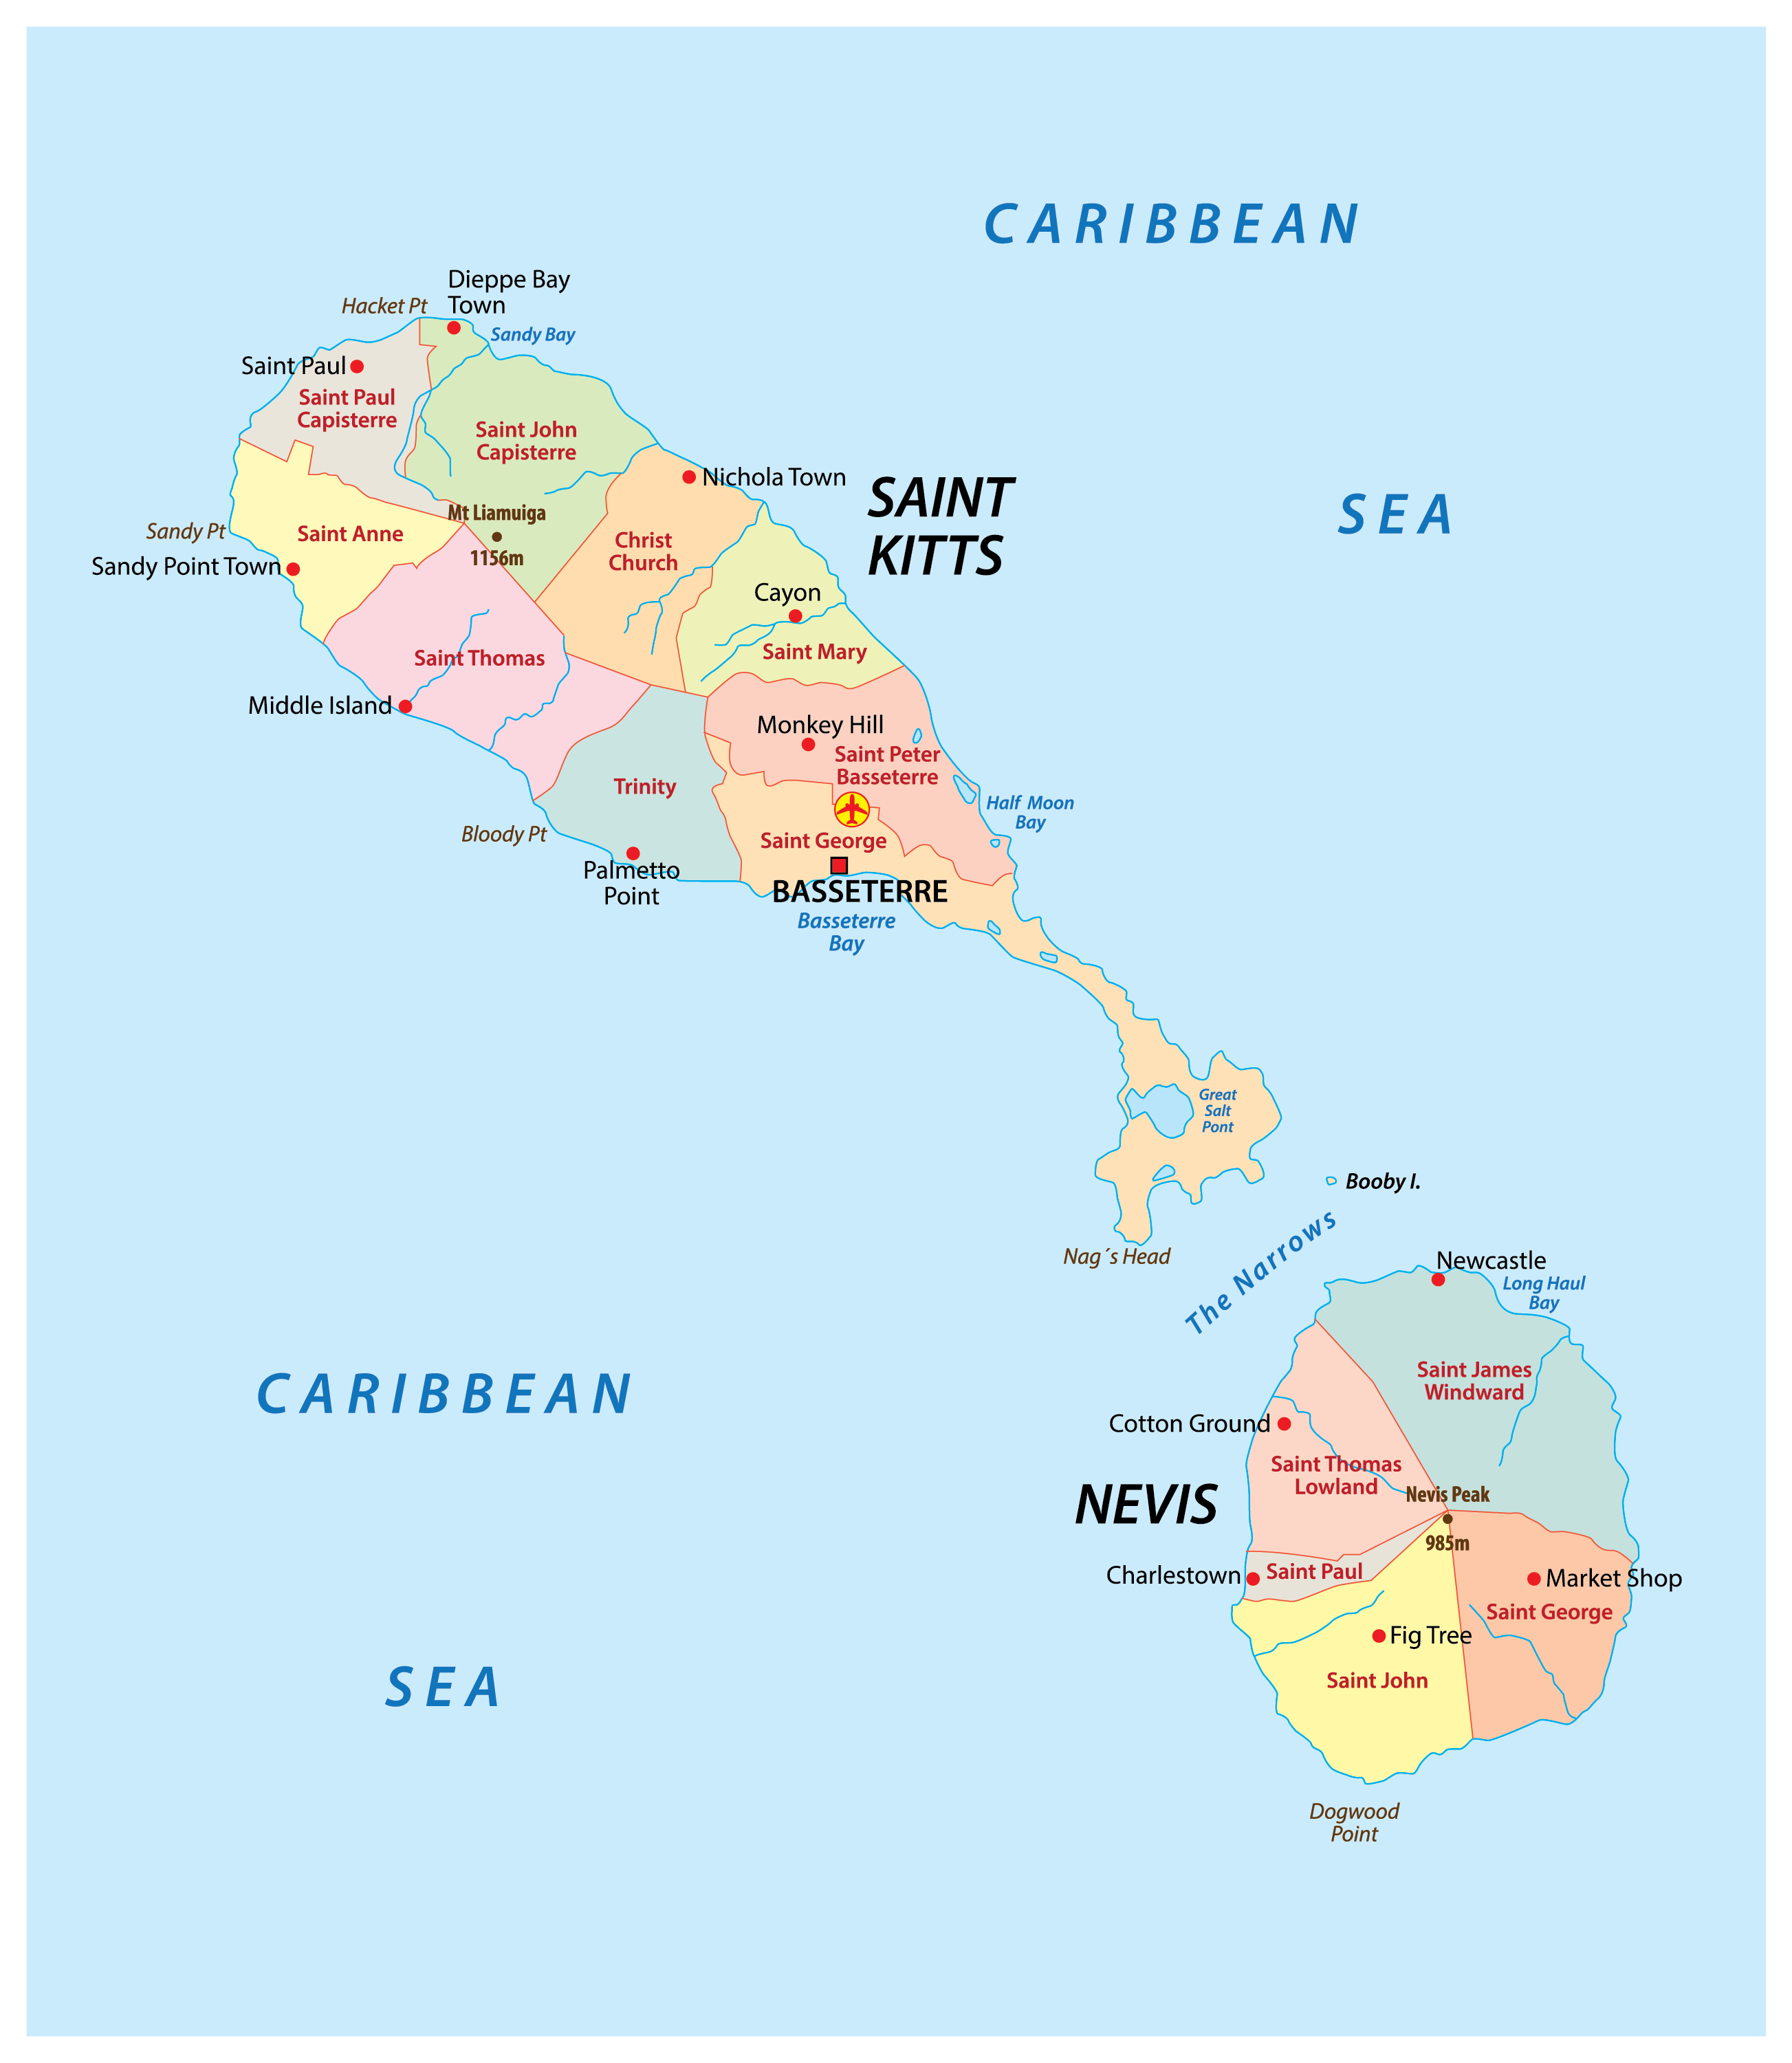 Political Map of Saint Kitts and Nevis showing its 14 parishes and the capital city of Basseterre.